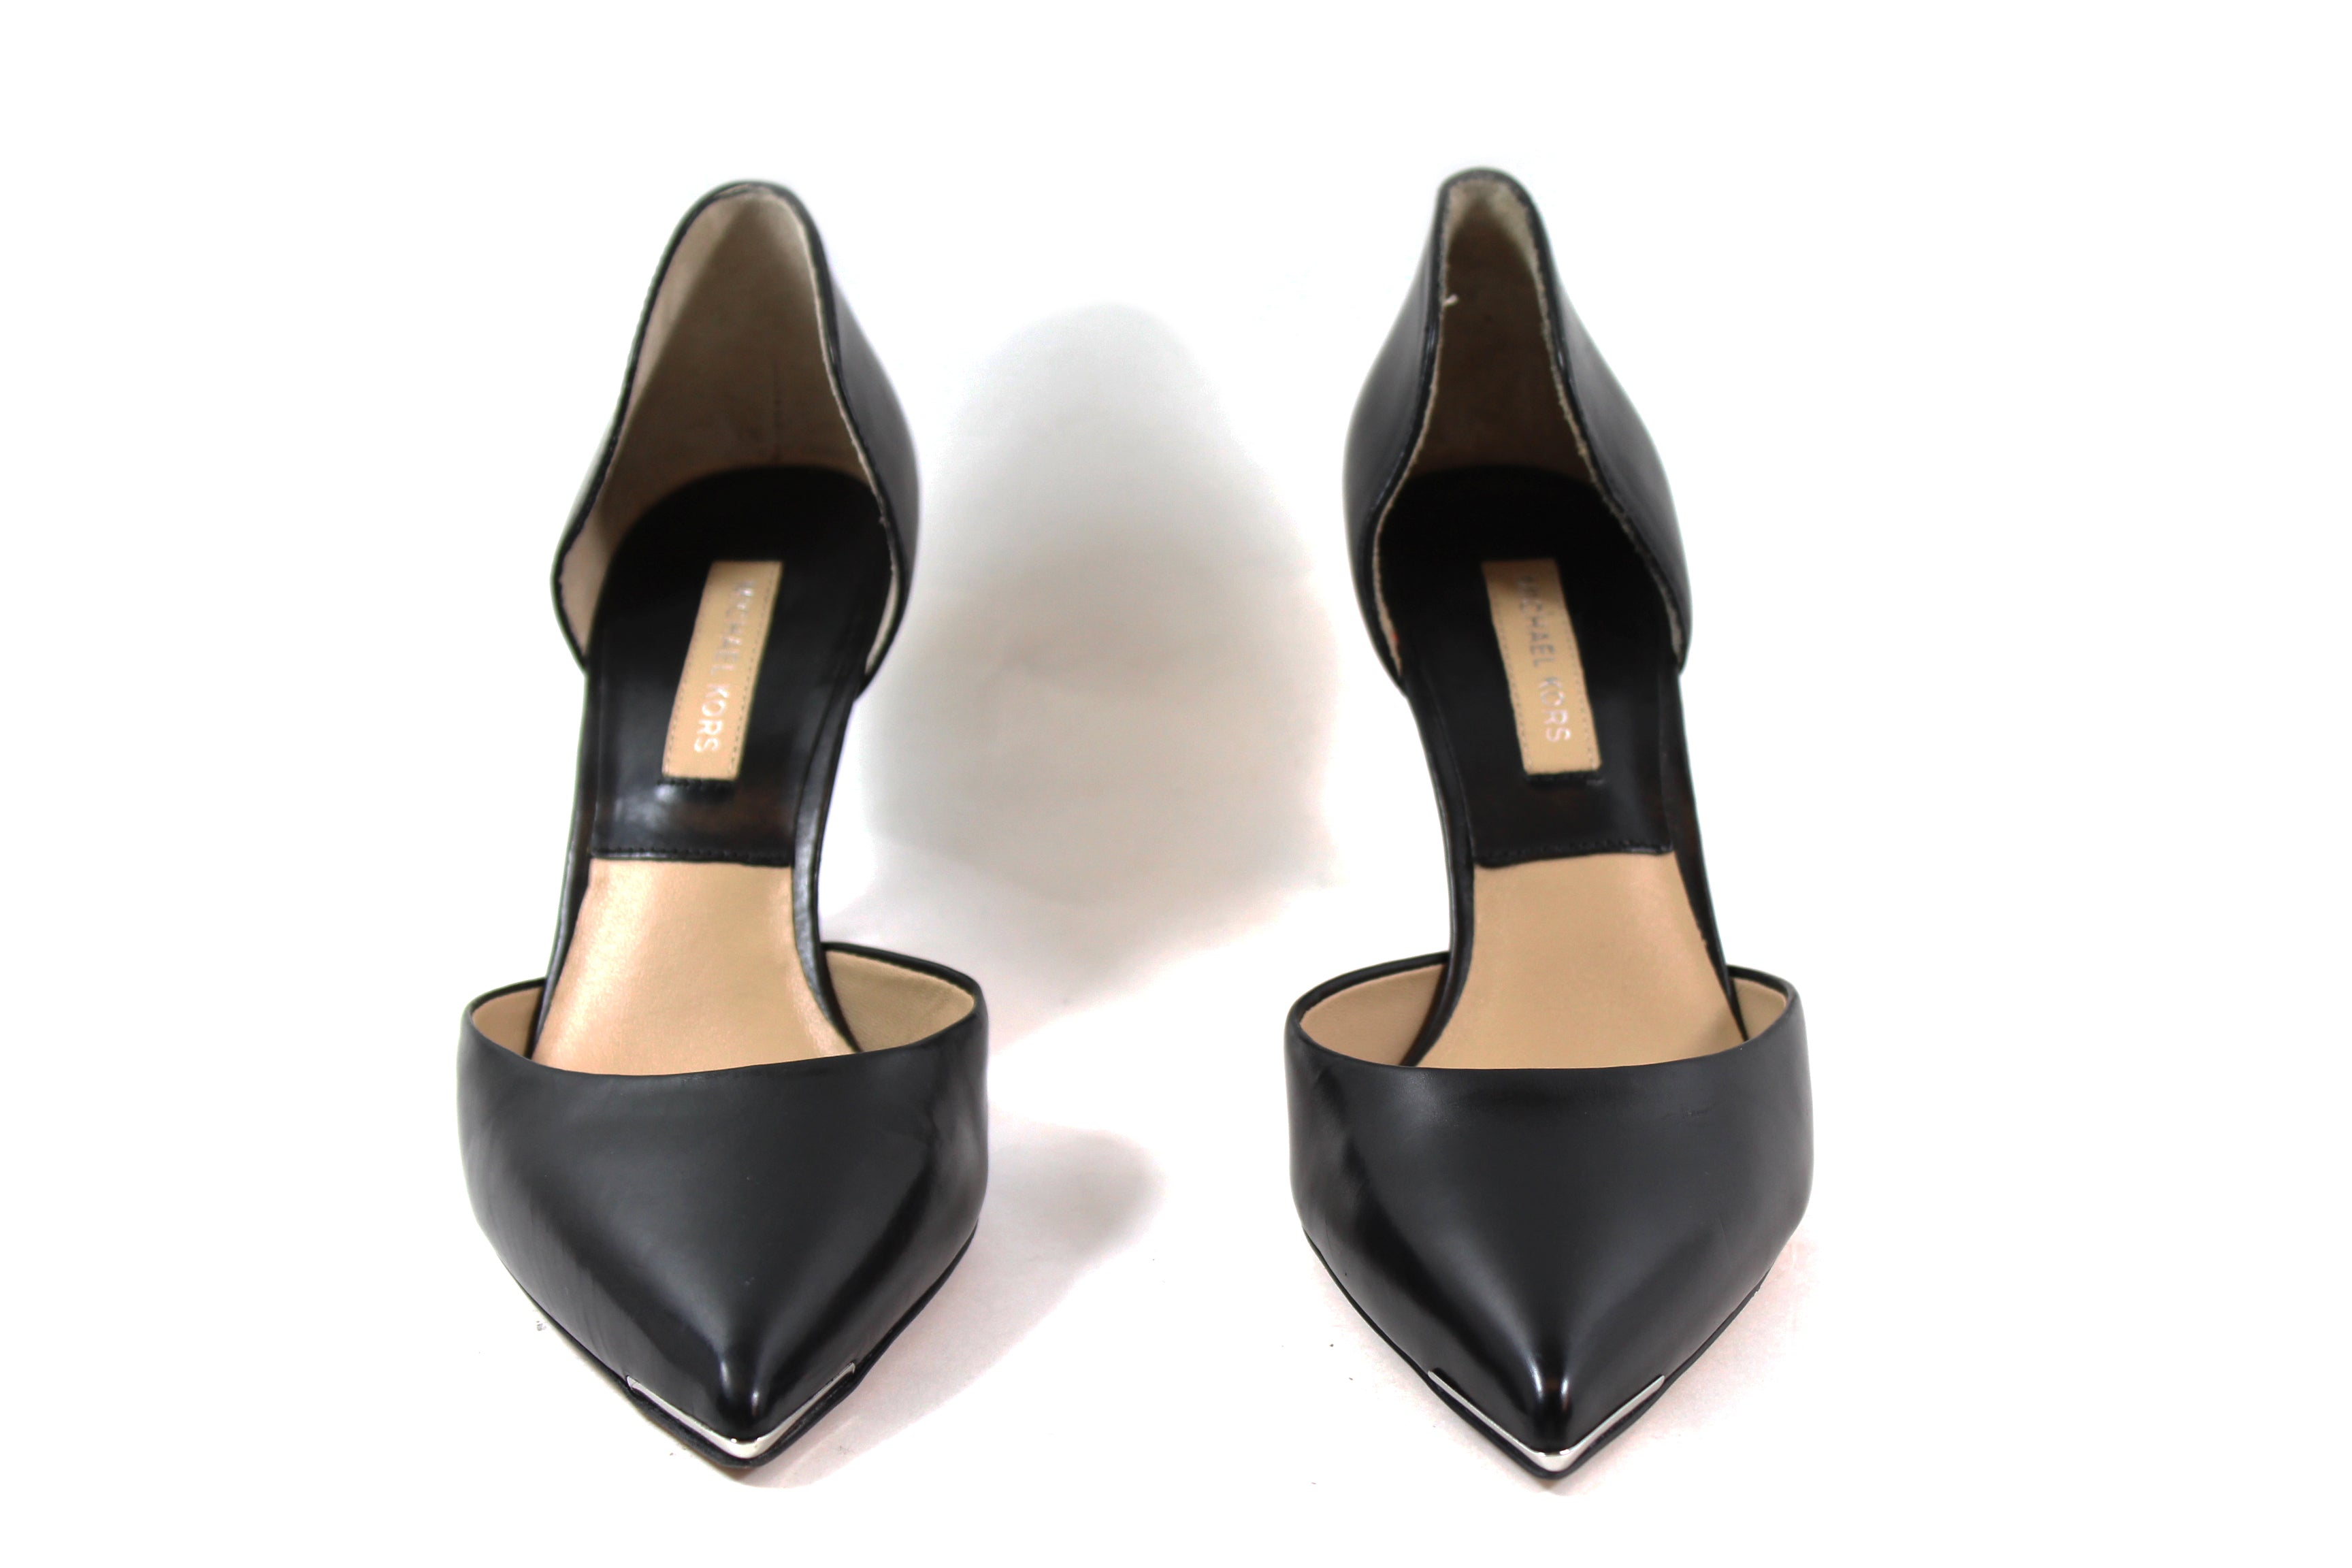 Michael Kors Black Leather d'Orsay Pumps (Size 36)